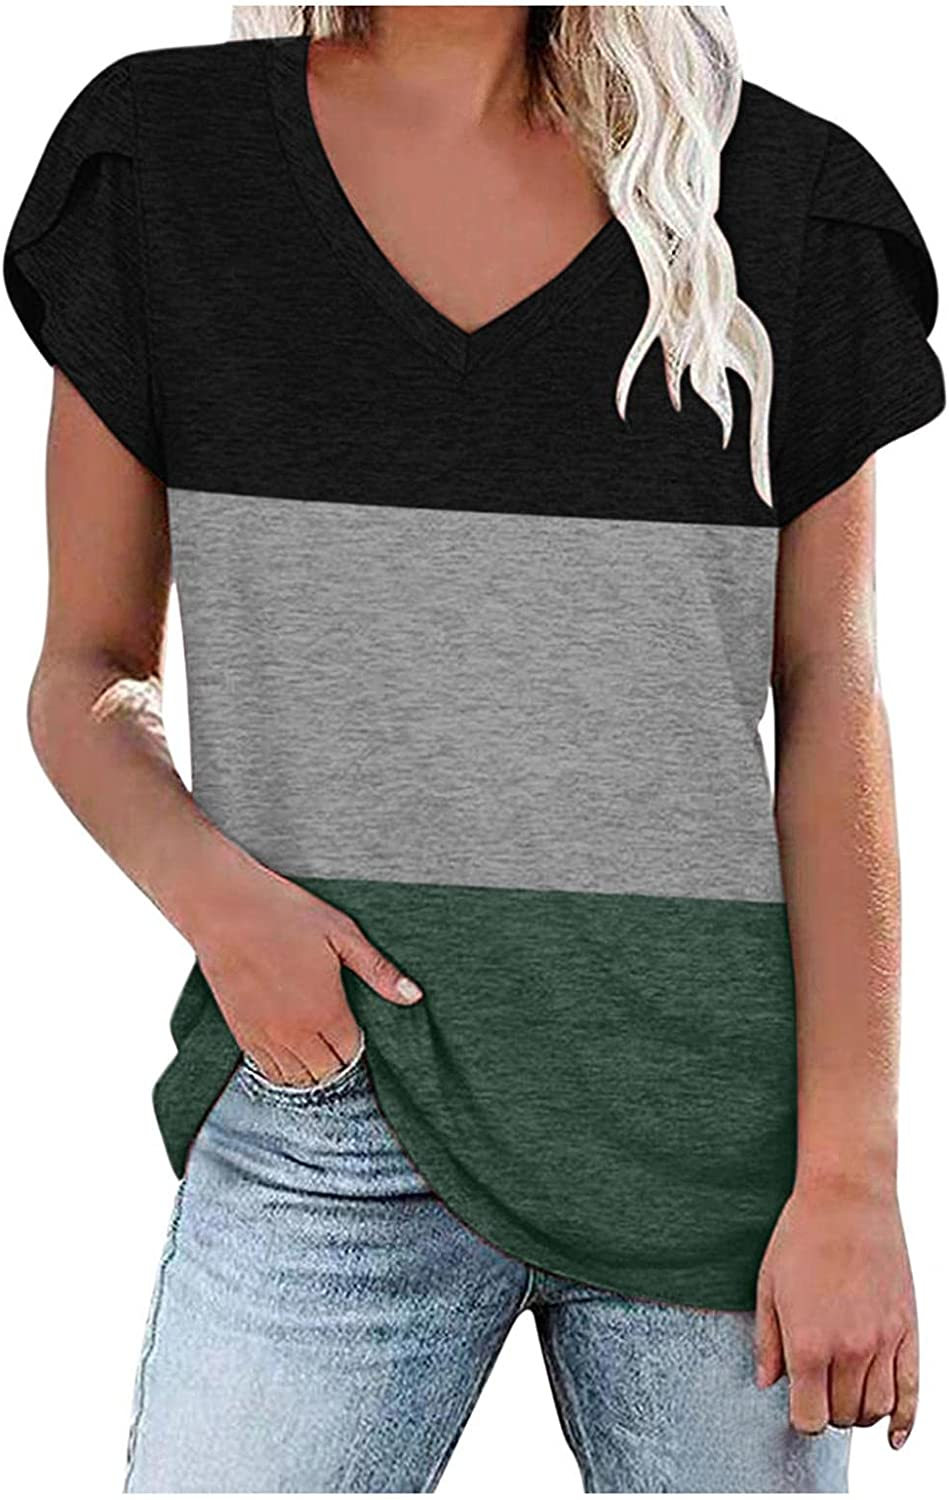 xoxing Summer Tops for Women Casual Plus Size Multi-Color Stitching Short-Sleeved V Neck Loose Tunics Blouse